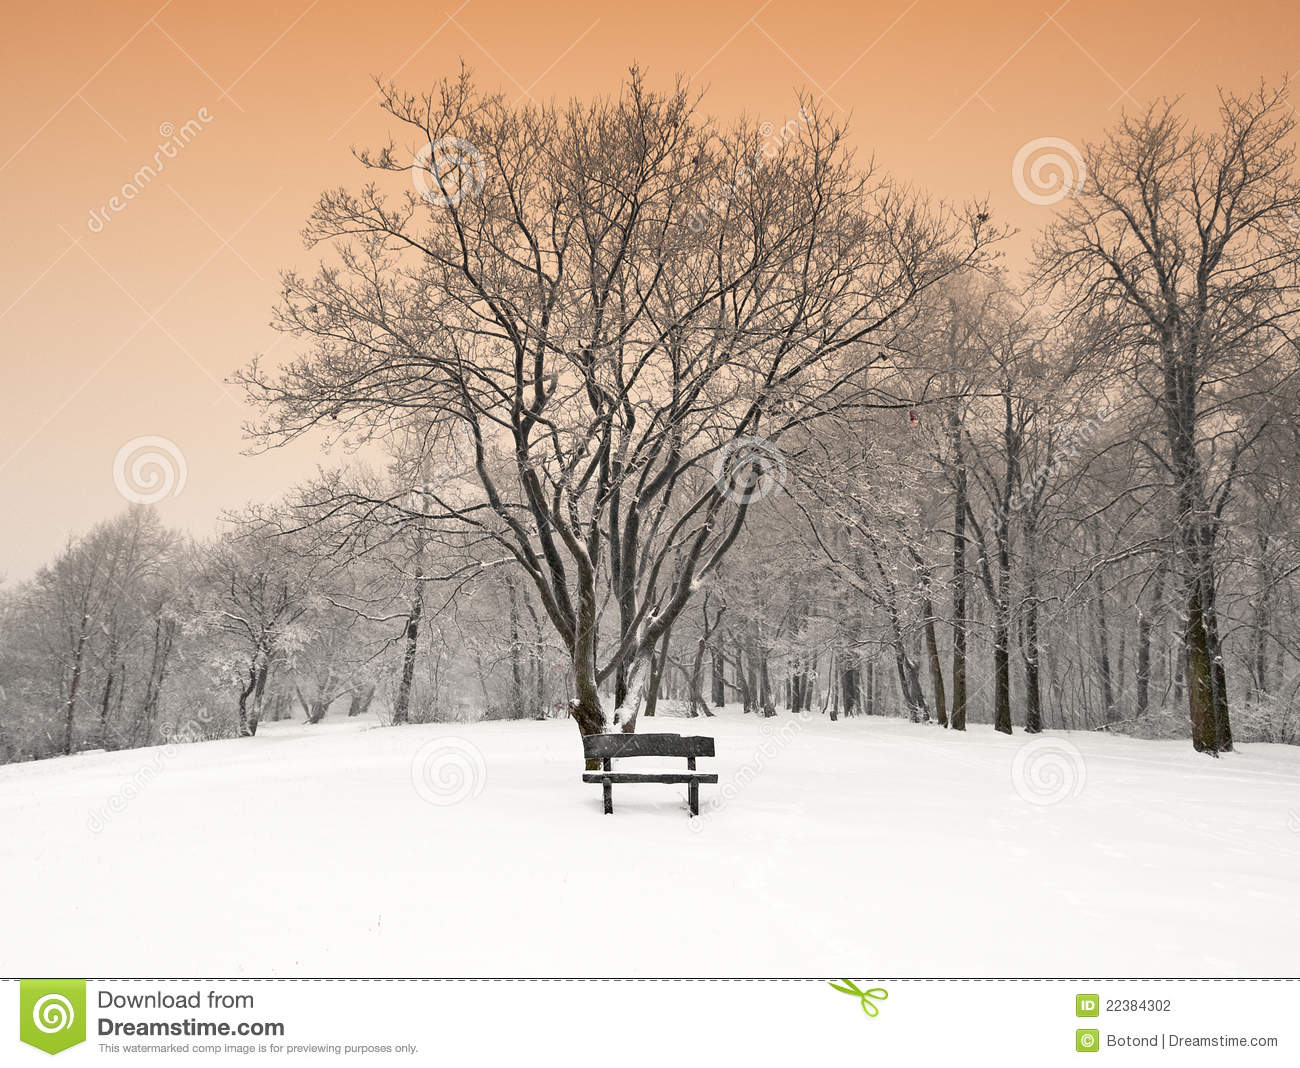 Nice Winter Scene Stock Photo. Image Of Harmony, Natural